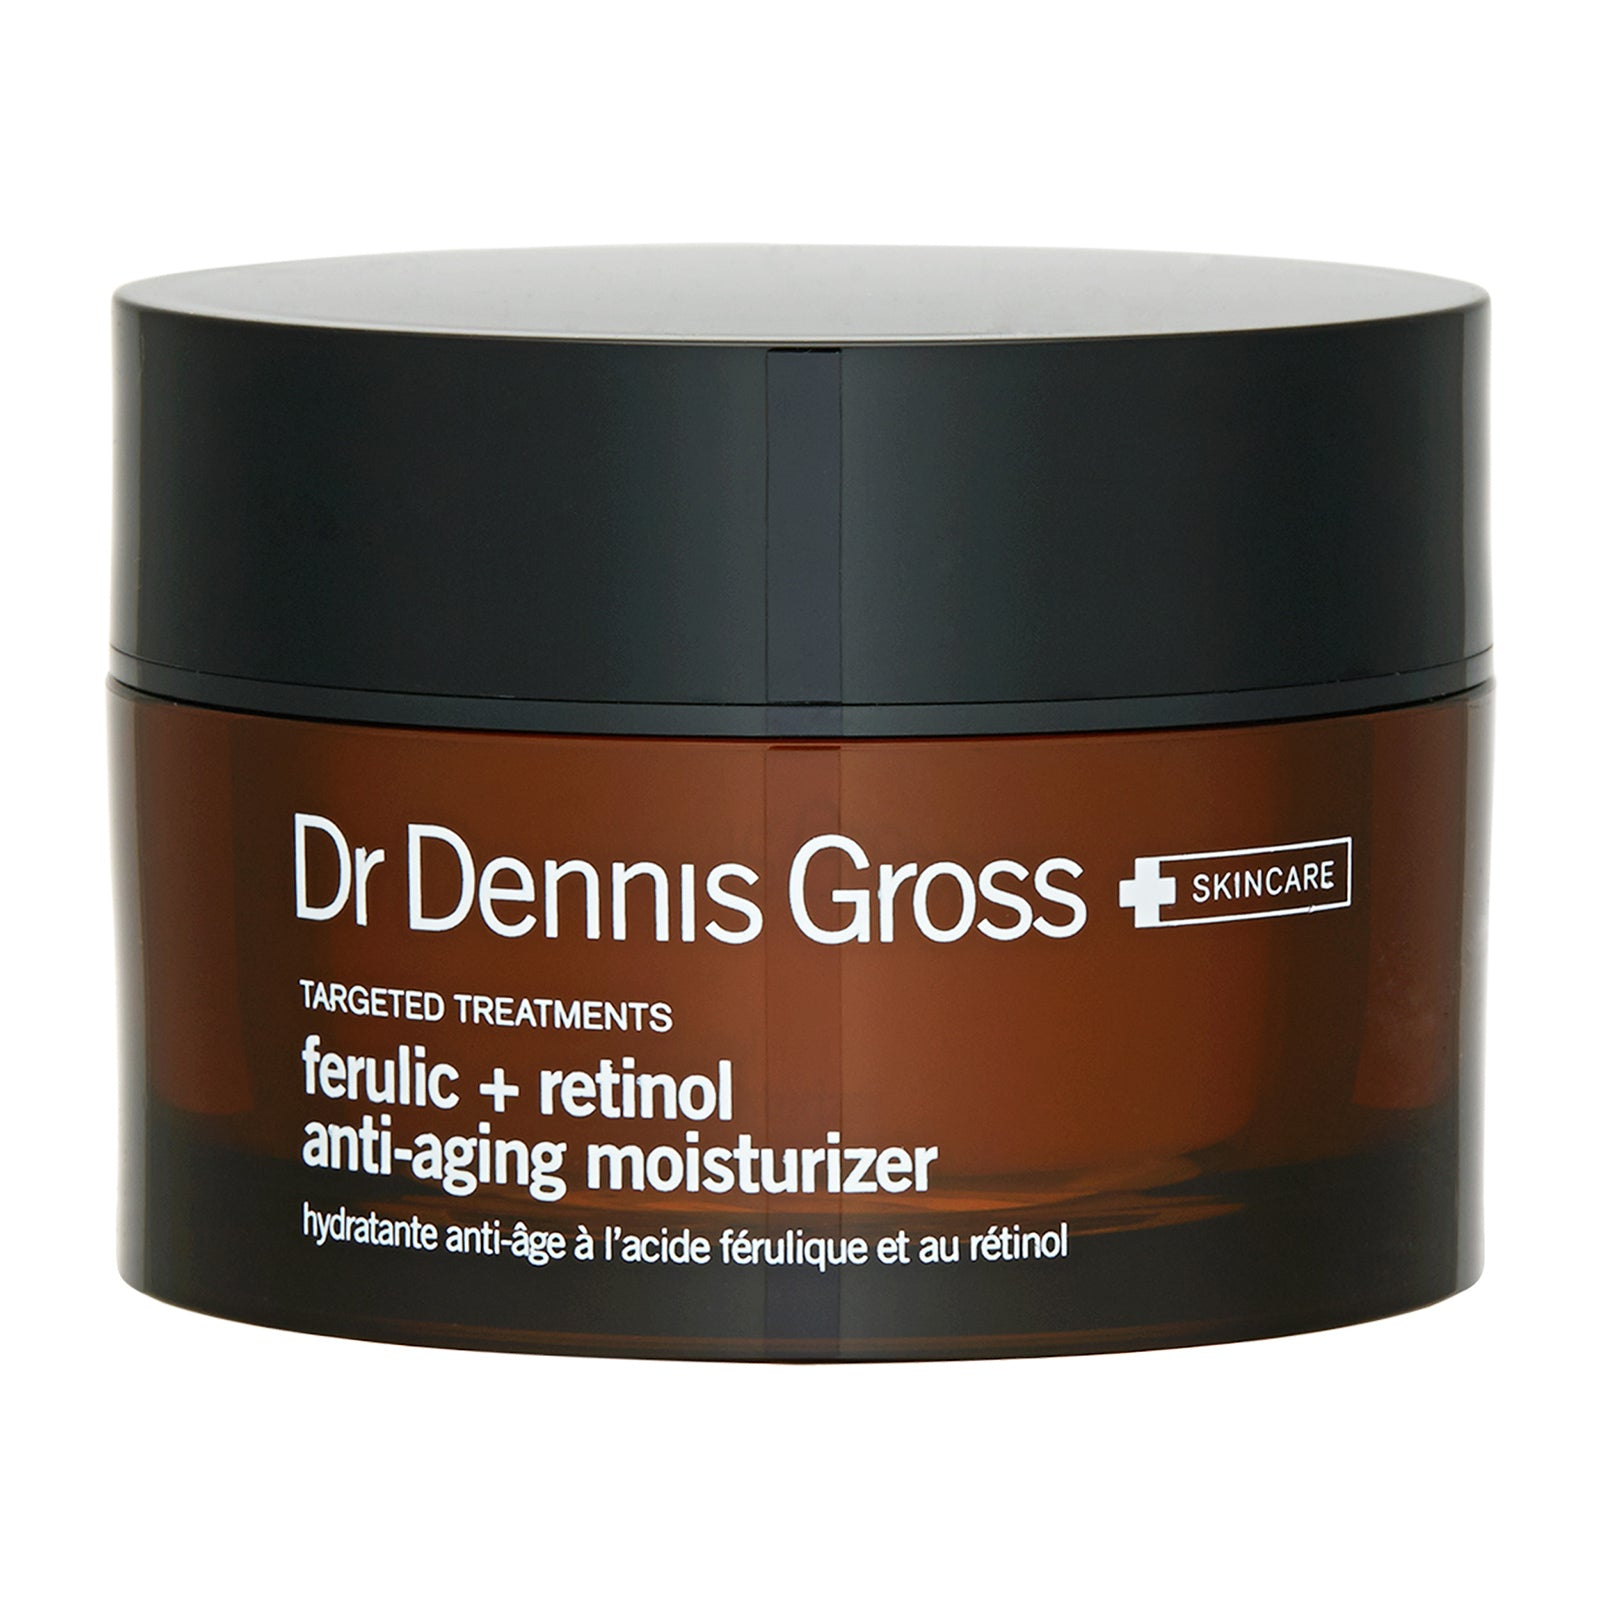 Gross Ferulic + Retinol Anti-Aging Moisturizer -- 1.7oz/50ml